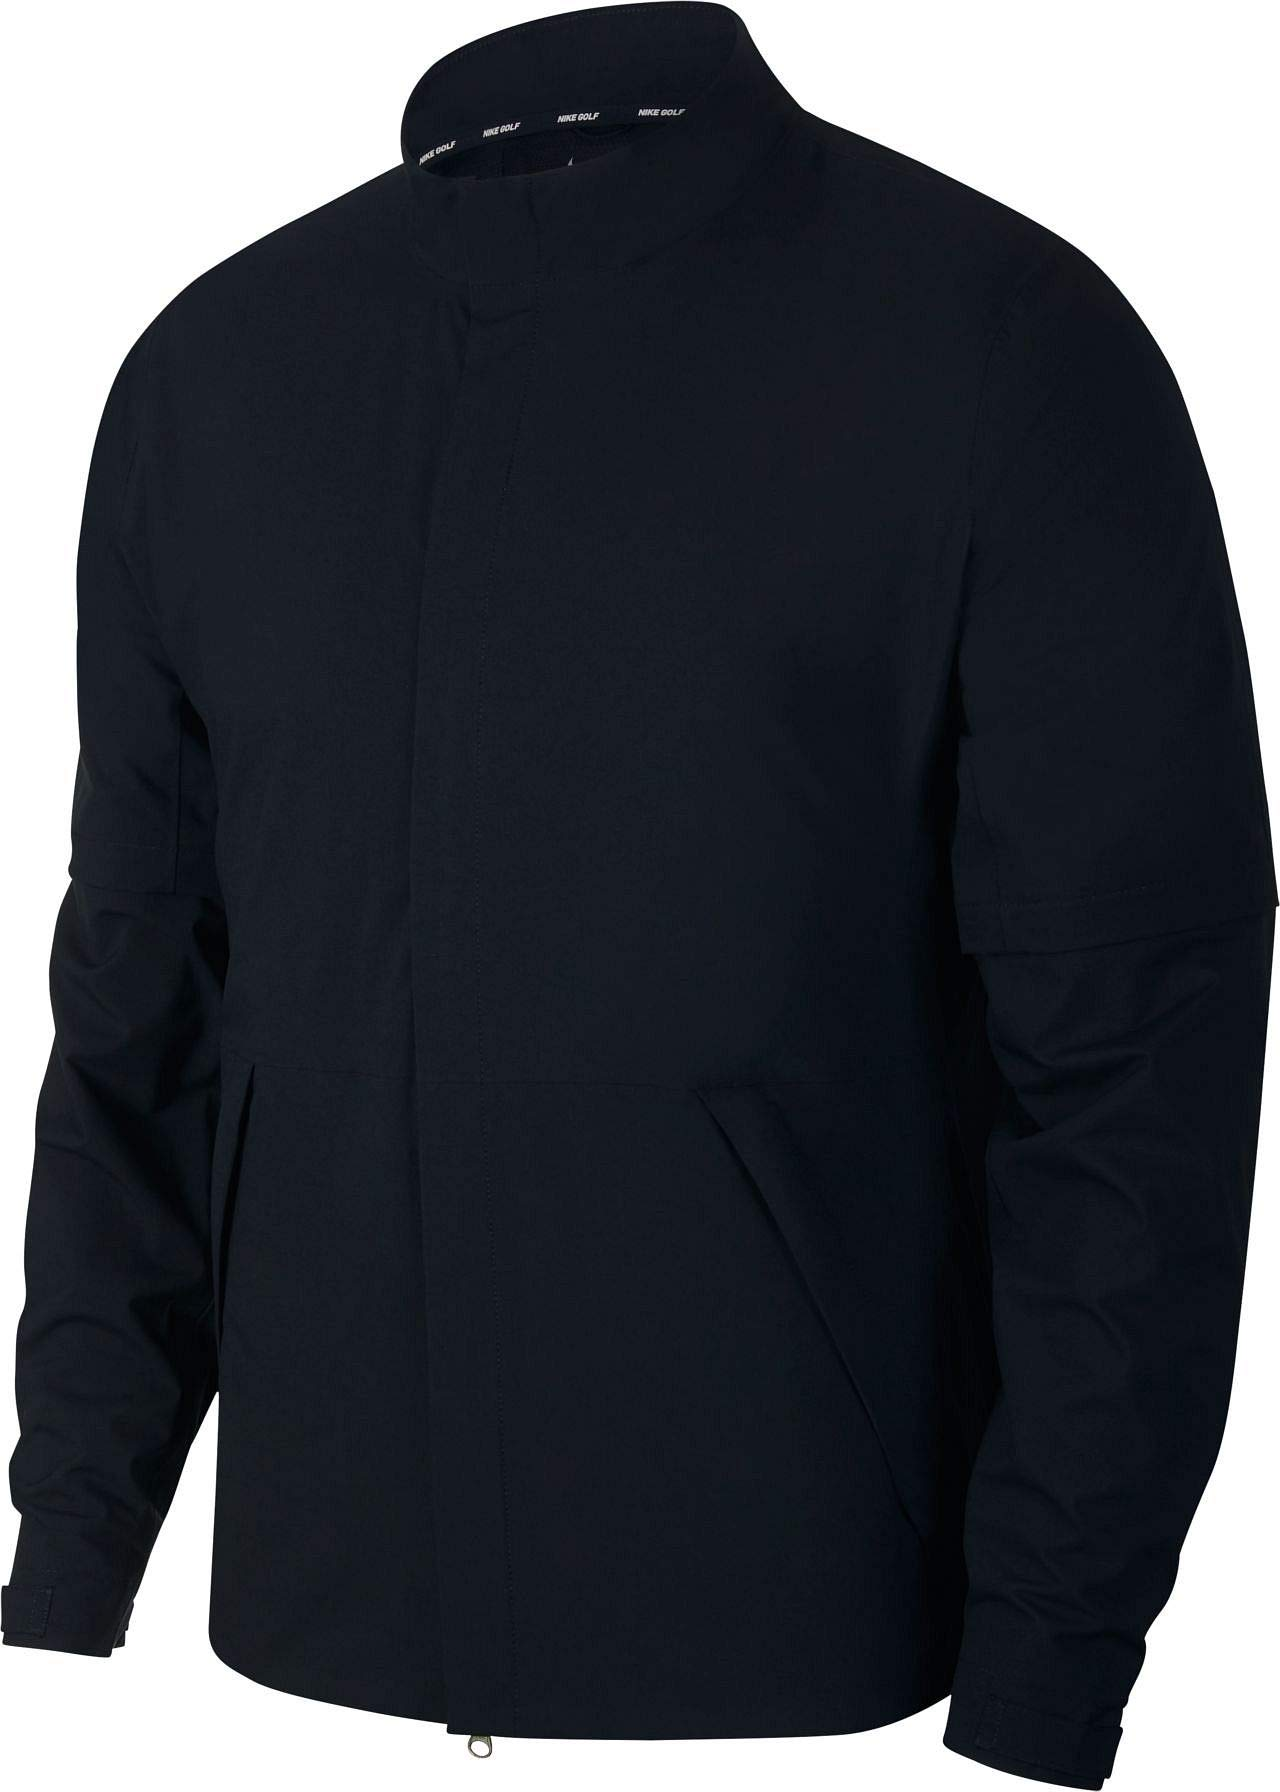 Nike HyperShield Convertible Core Golf Jacket 2019 Black XX-Large by Nike